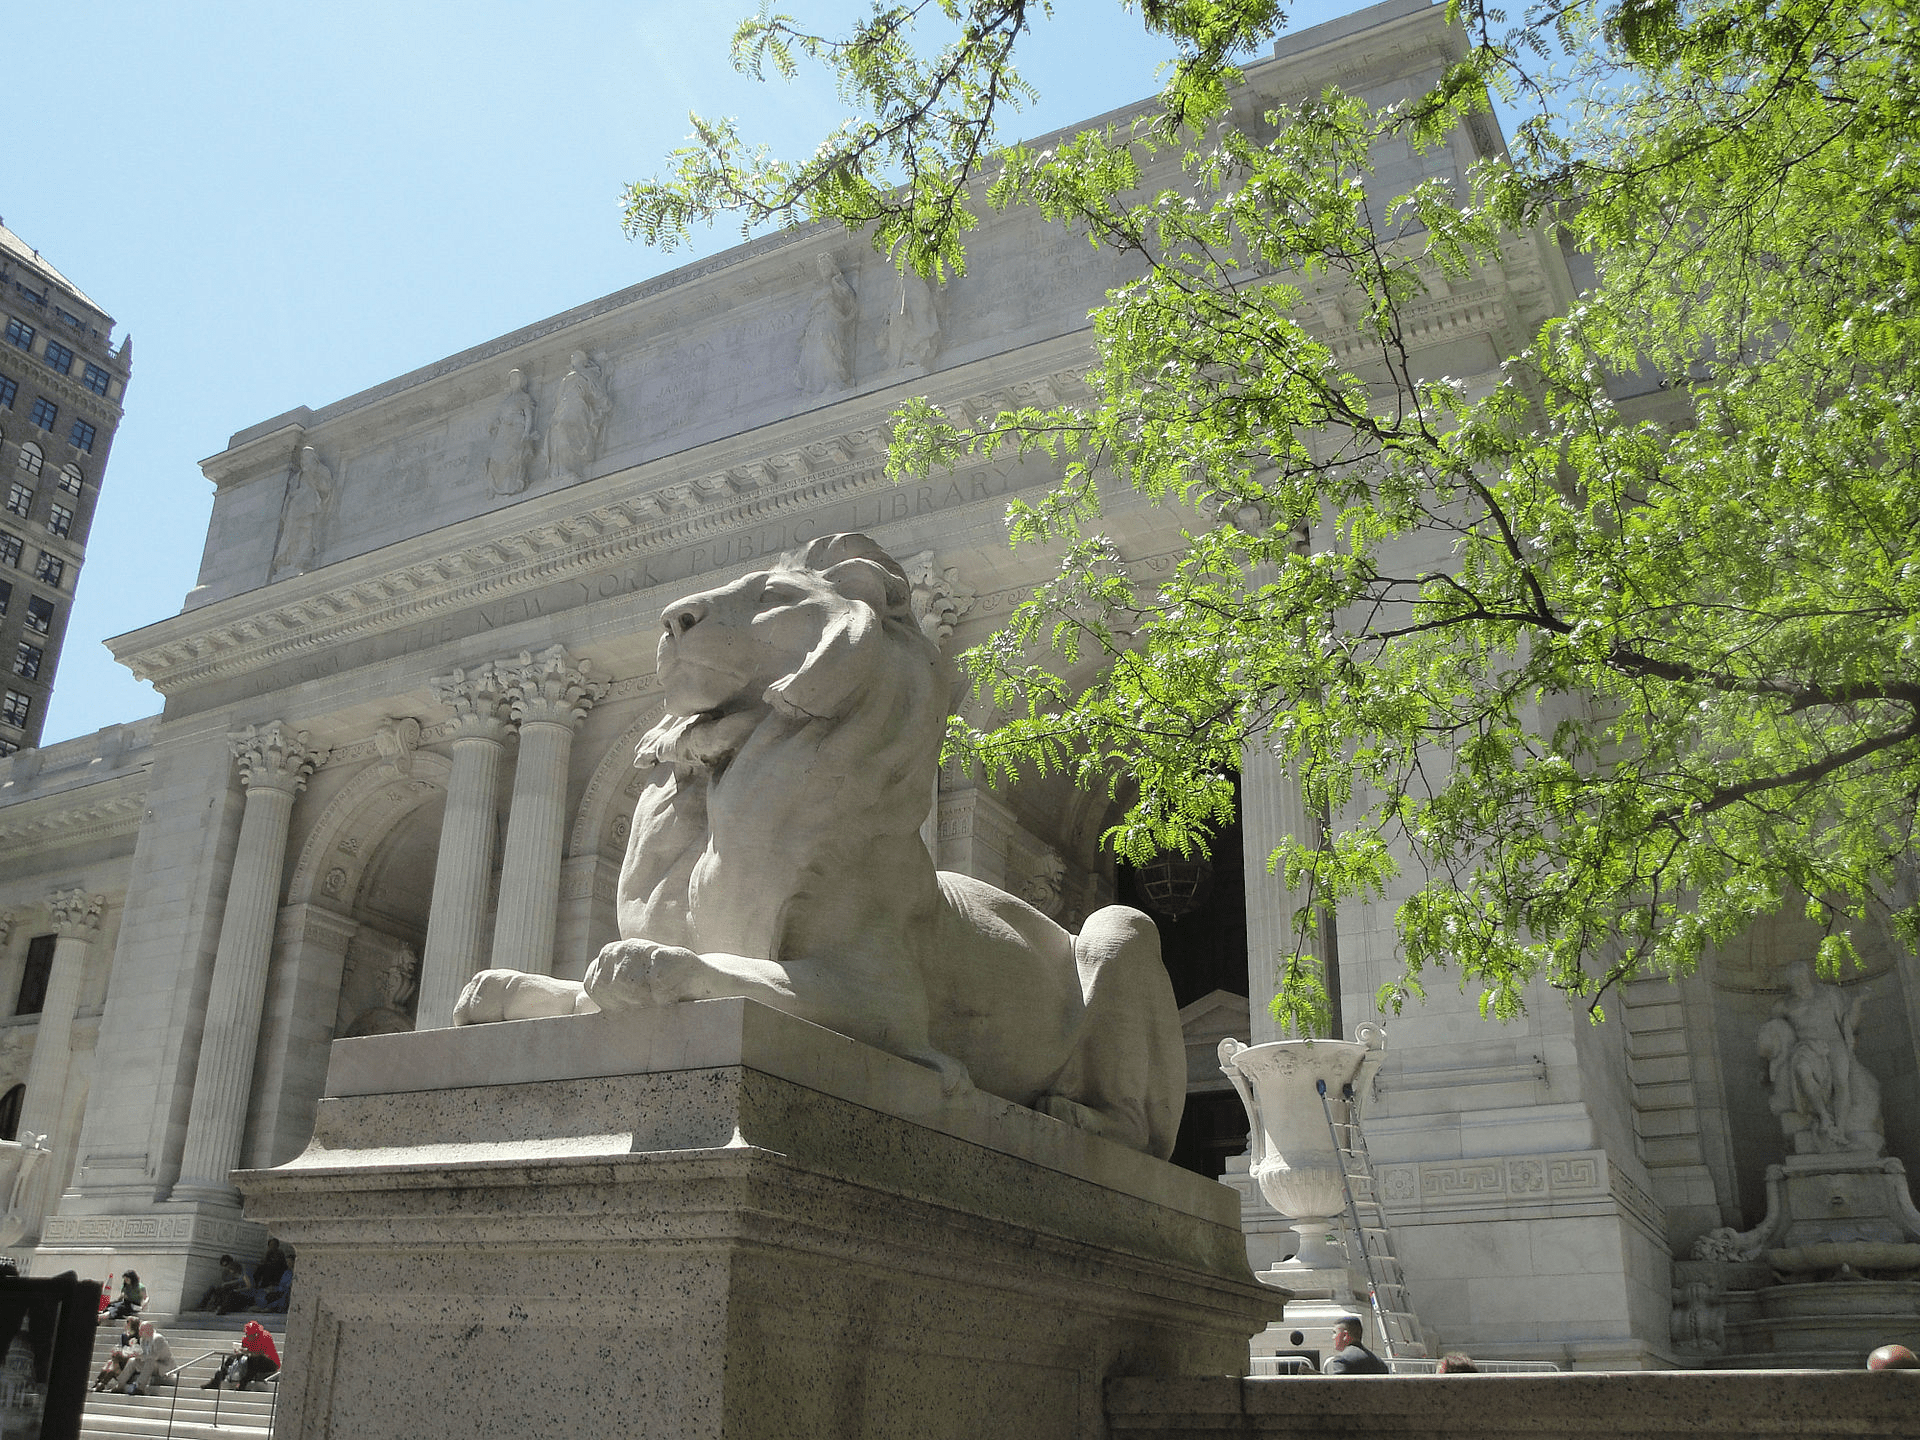 A Visit to the New York City Library